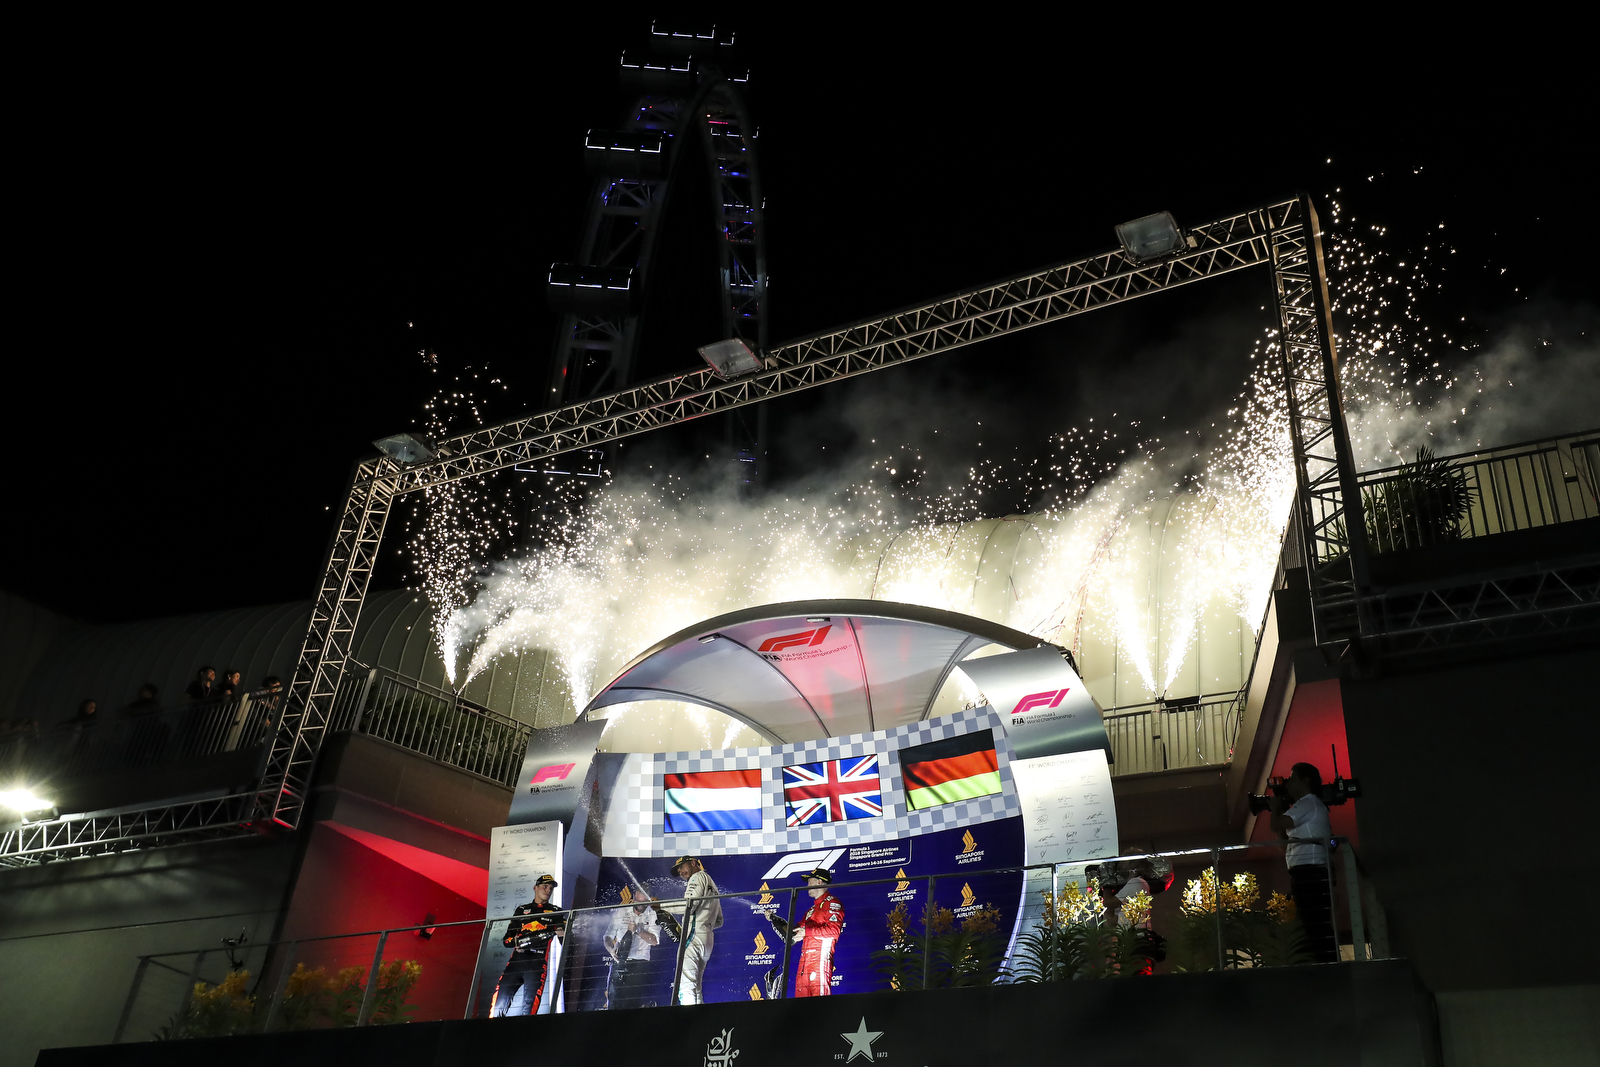 Mercedes driver Lewis Hamilton of Britain, center, sprays champagne as he celebrates after winning the Singapore Formula One Grand Prix, next to Ferrari driver Sebastian Vettel of Germany, right, and Red Bull Racing driver Max Verstappen at the Marina Bay City Circuit in Singapore, Sunday, Sept. 16, 2018. (AP Photo/Yong Teck Lim)